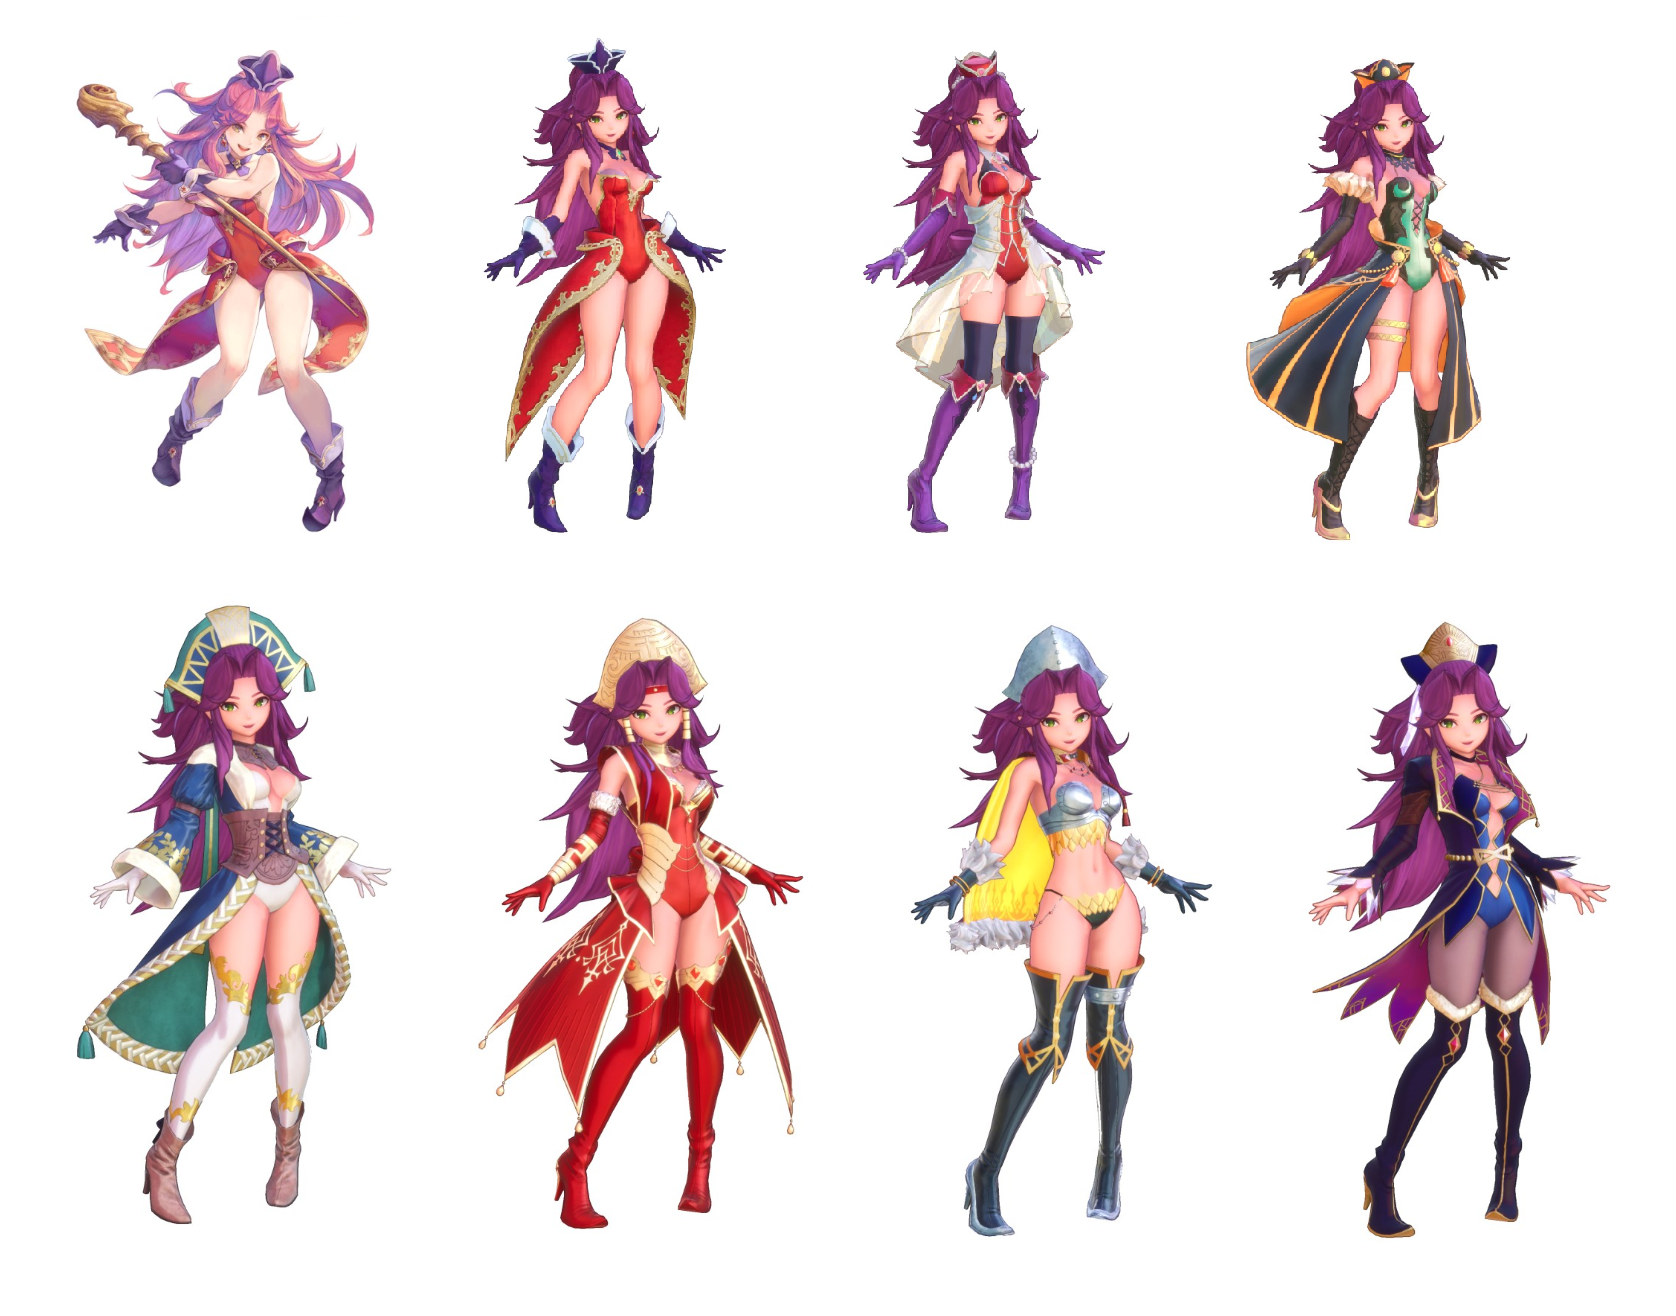 Trials of mana gameplay characters and classes Angela